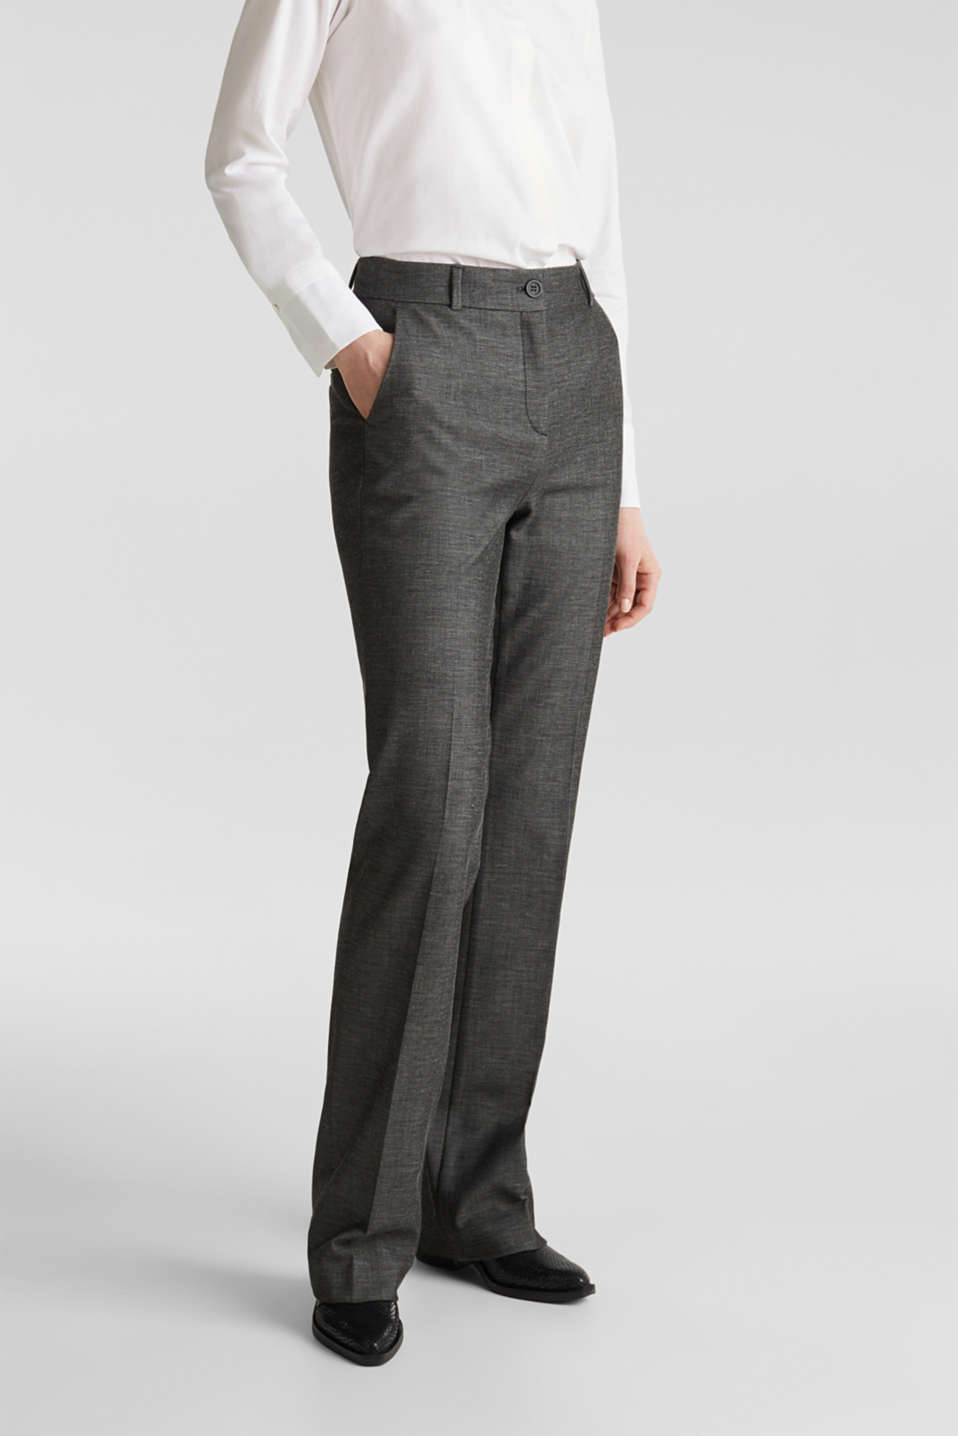 SHINY TEXTURE mix + match stretch trousers